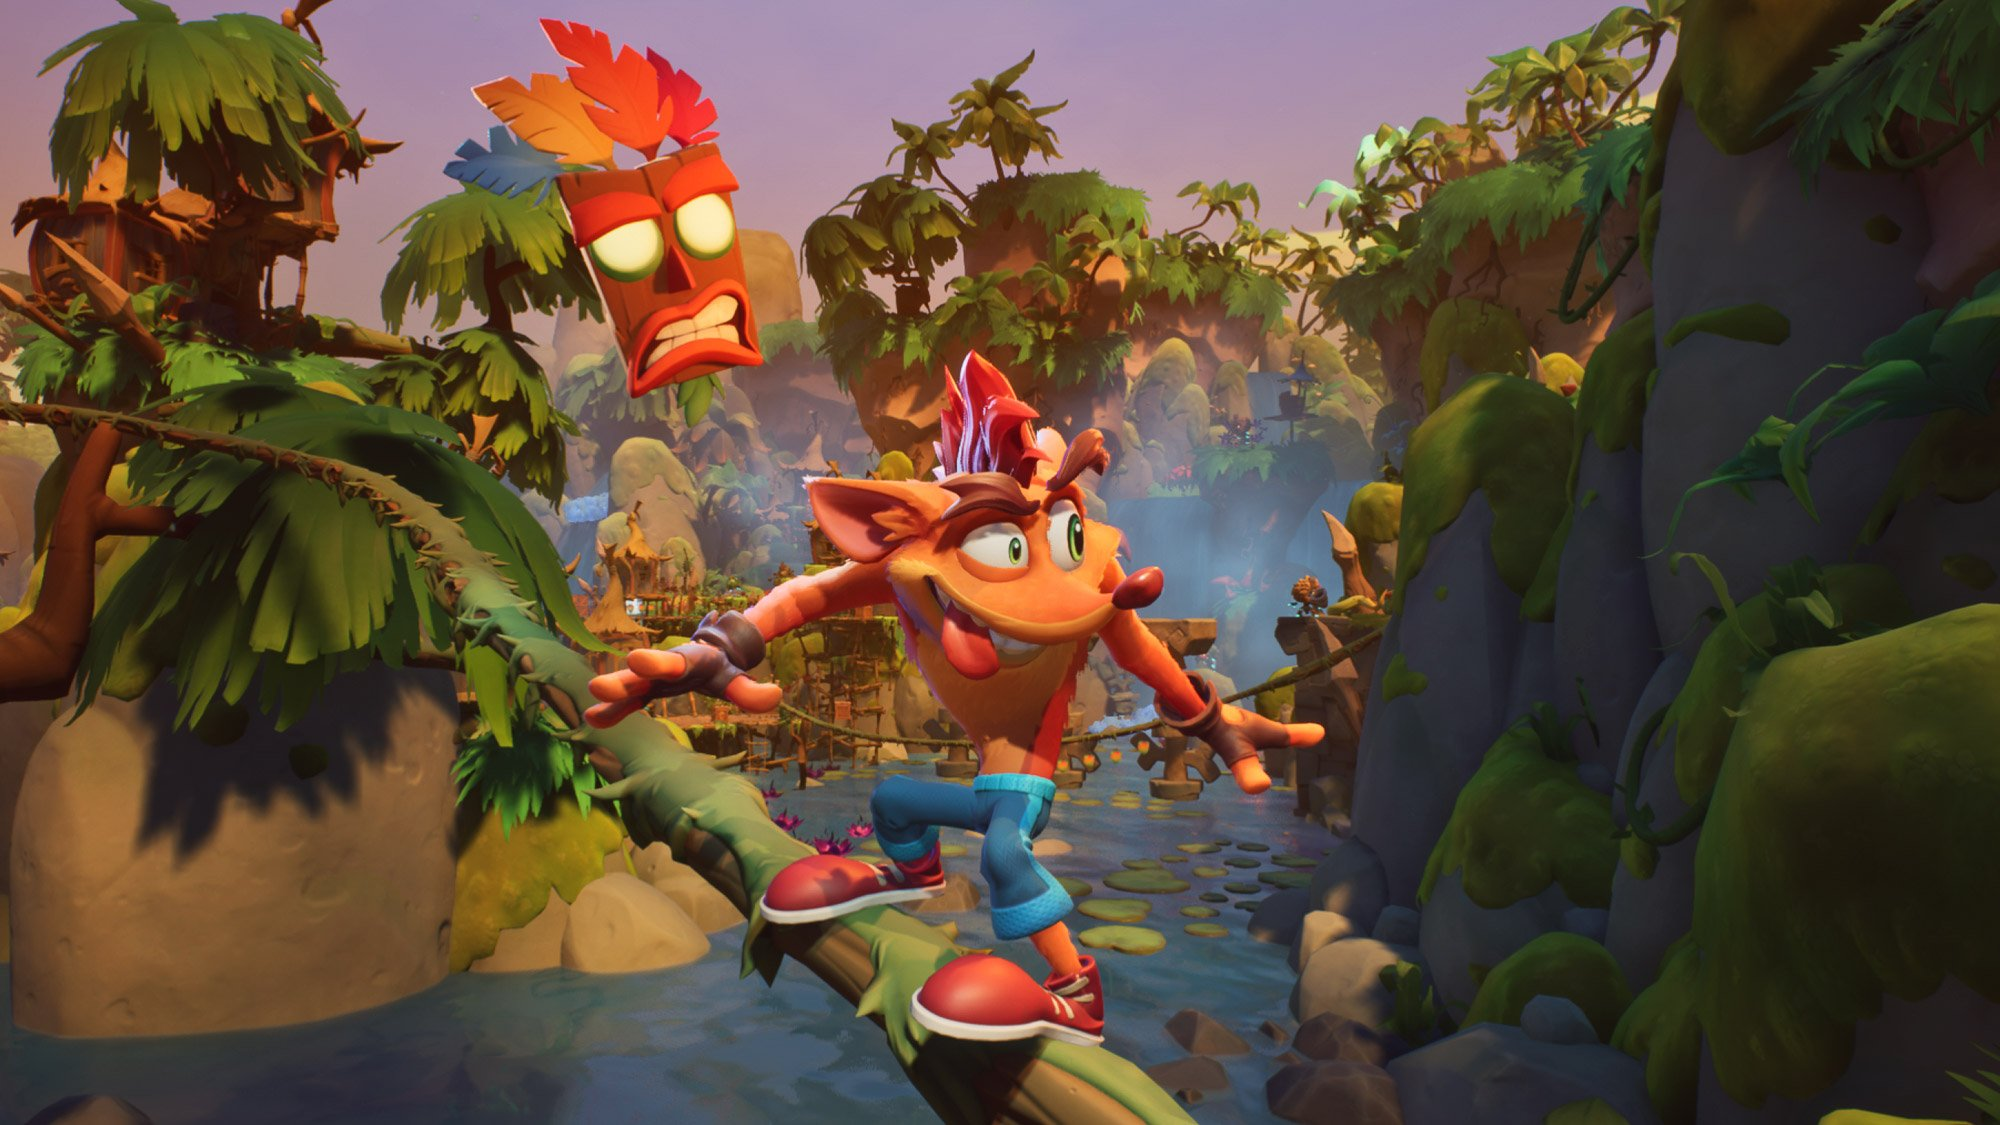 Quavo Unveils Gameplay From 'Crash Bandicoot 4: It's About Time' On IG